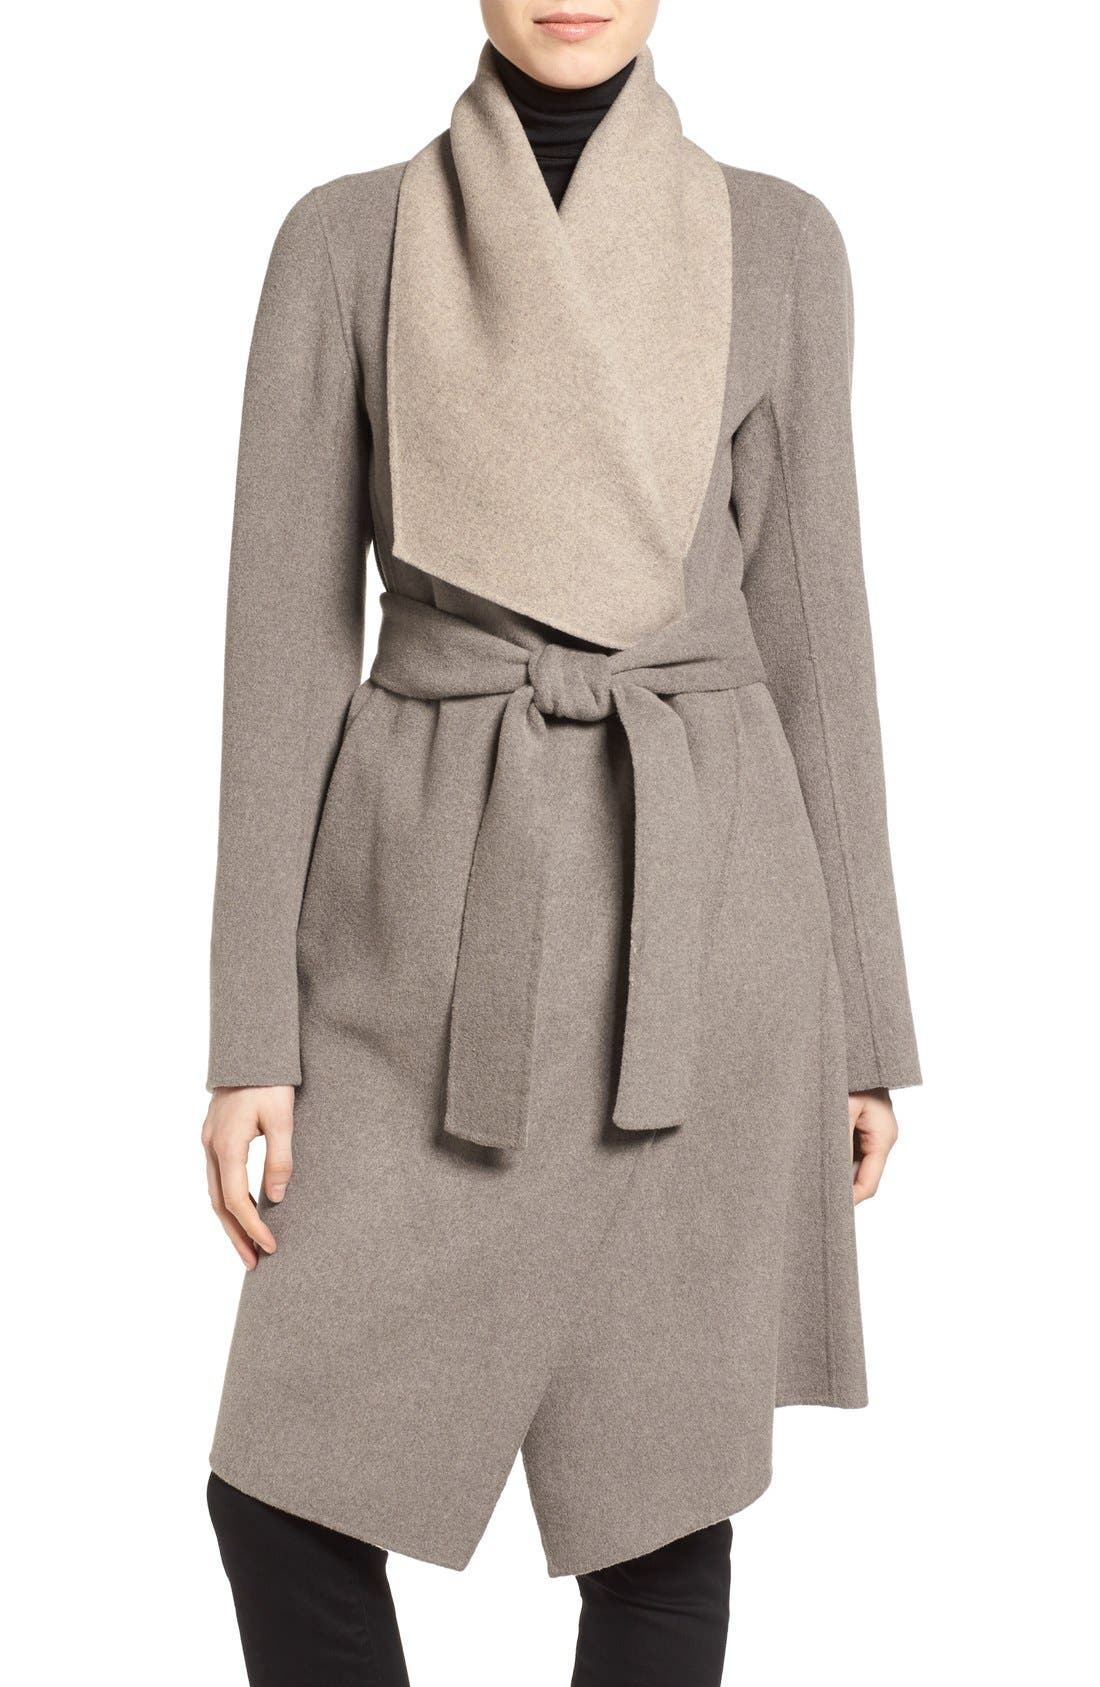 Reversible Double Face Wrap Coat,                         Main,                         color, Taupe/ Oatmeal